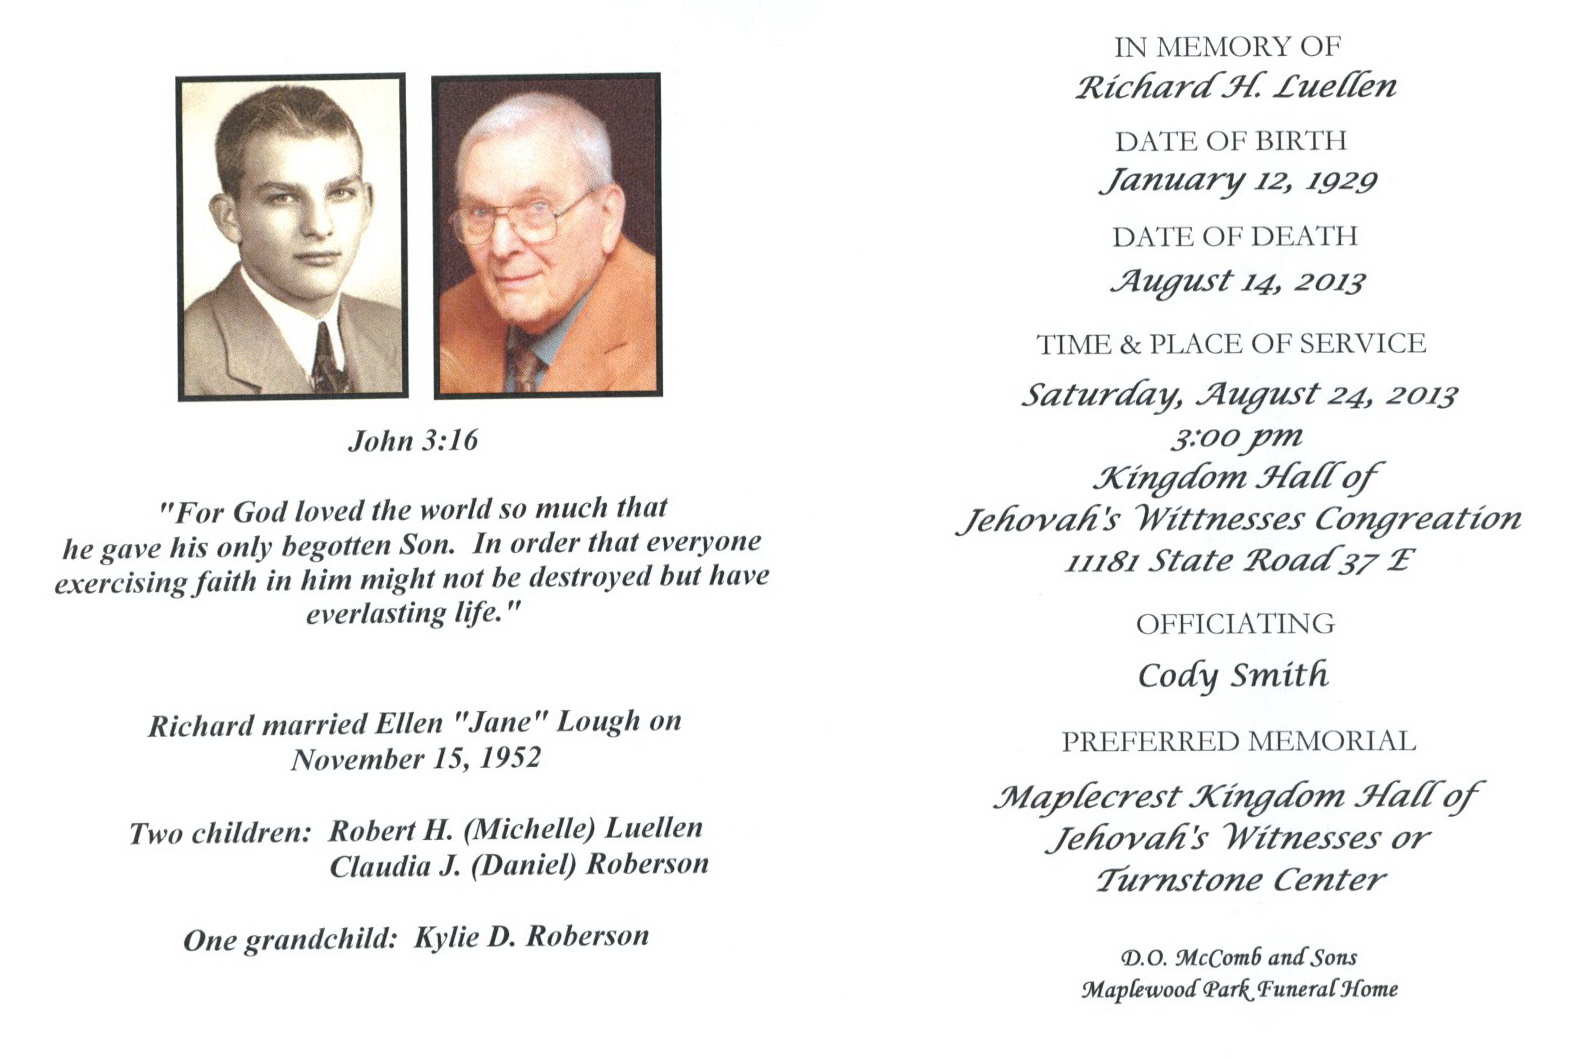 Acgsi funeral card collection cody smith kingdom hall of jehovahs witnesses izmirmasajfo Gallery